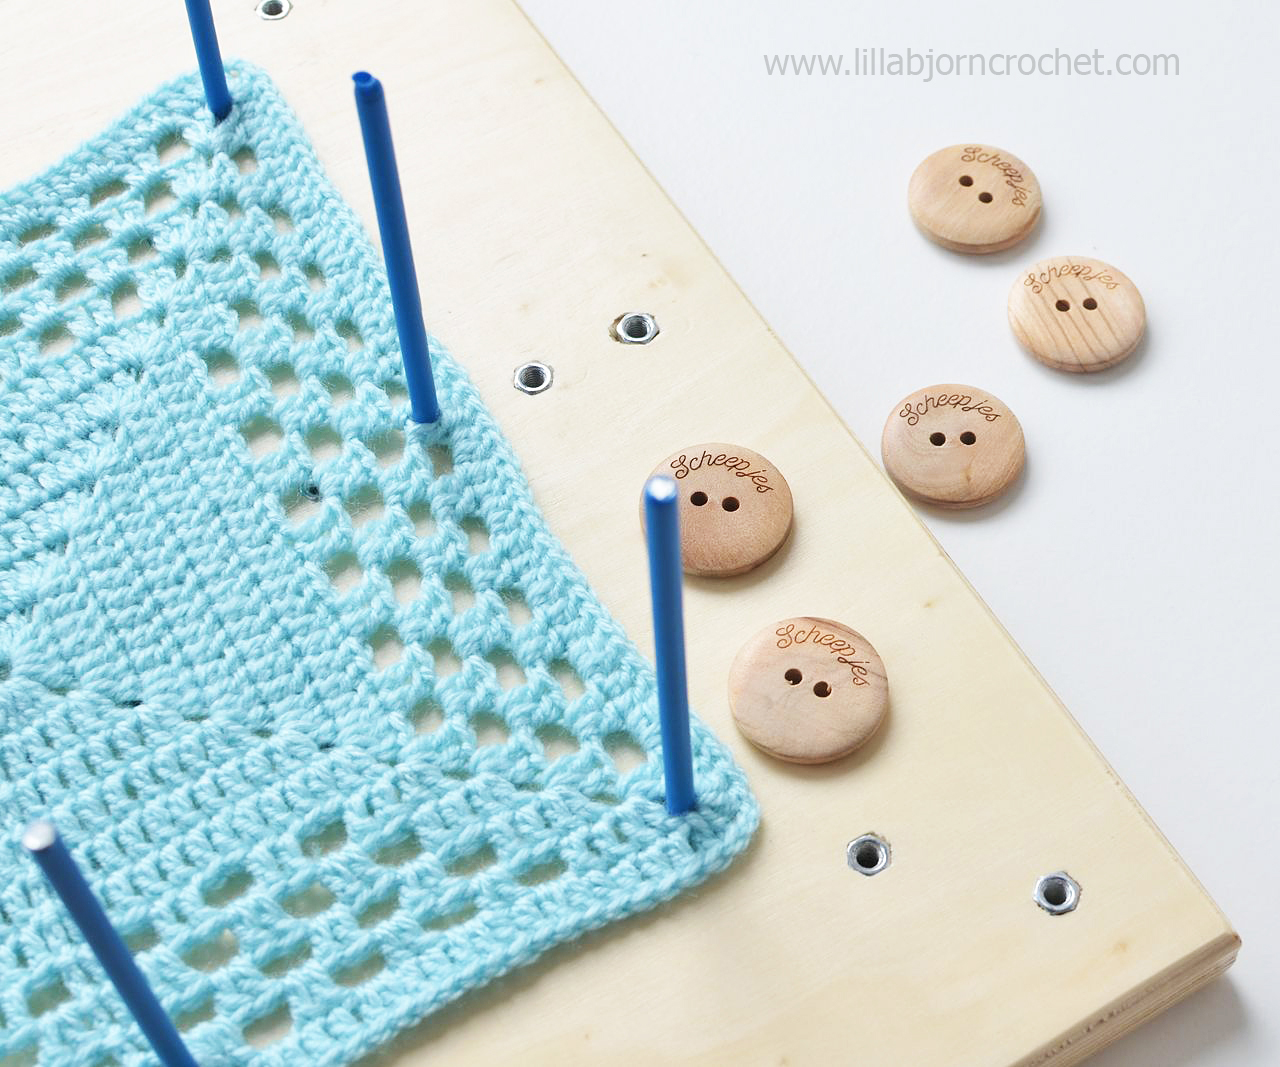 Crochet Blocking : ... to block crochet and knitted projects? LillaBj?rns Crochet World